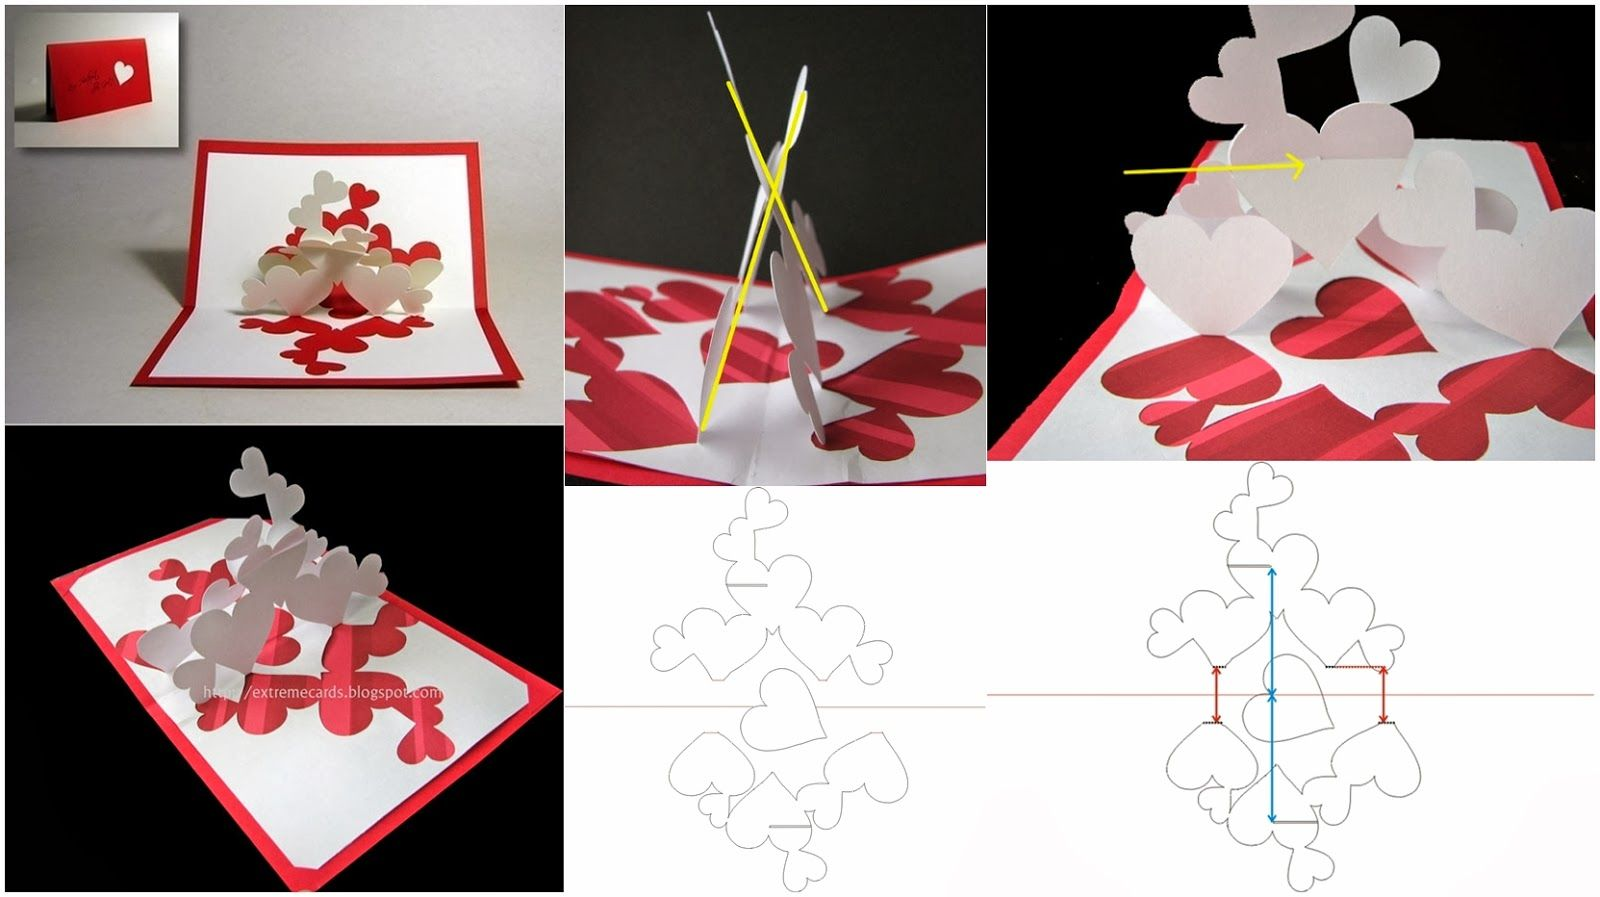 fold out heart cards - Google Search | Birthday cards, gift cards ...